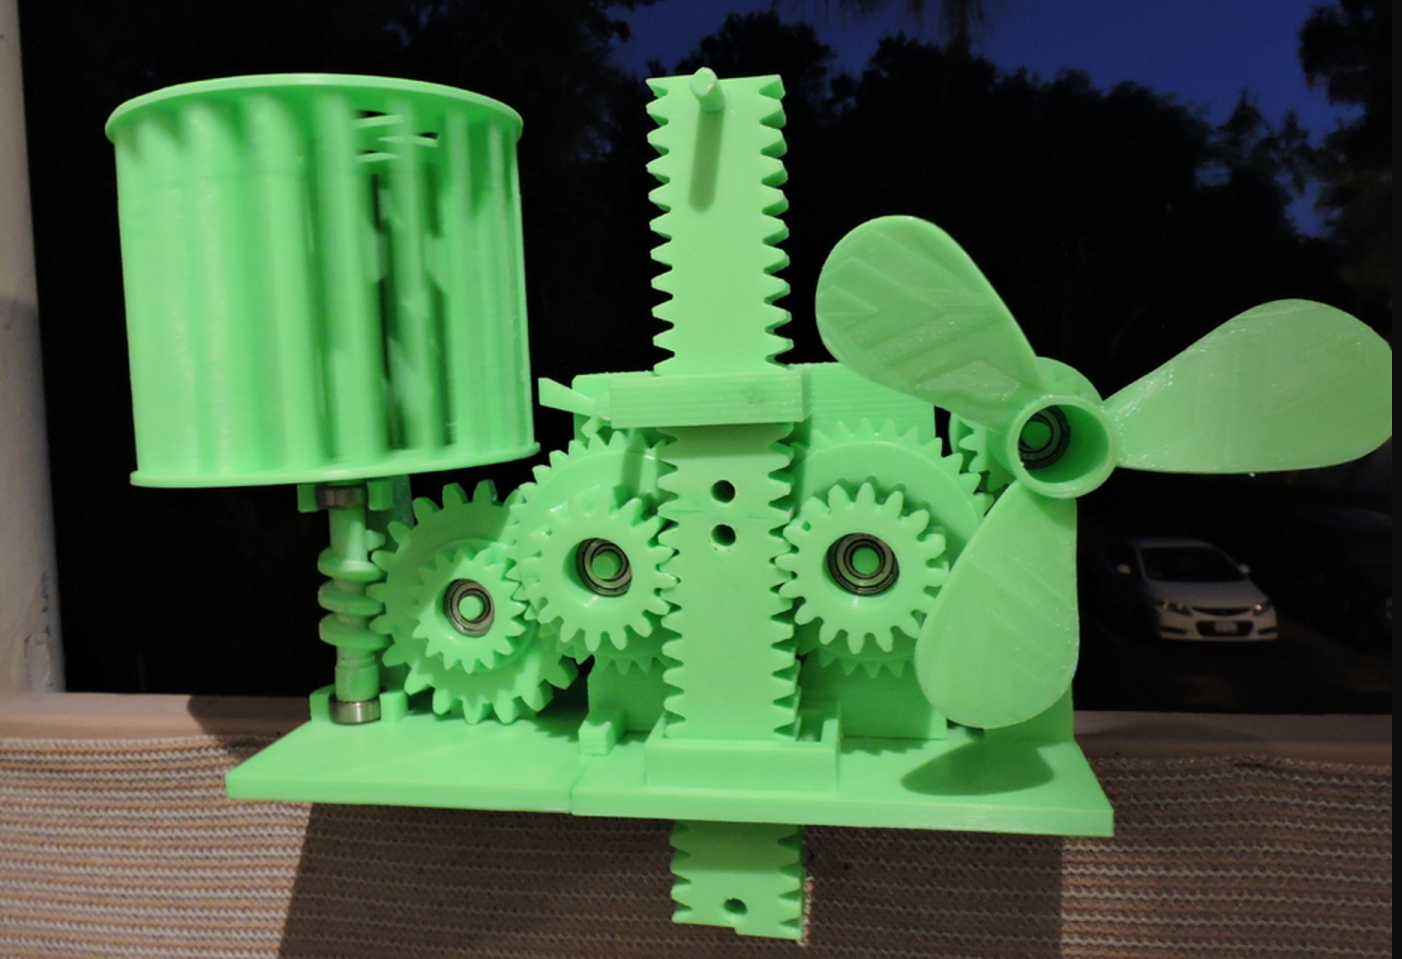 Onwijs This Cool 3D Printed Project Stores Wind Energy as Gravity – 3D LC-77